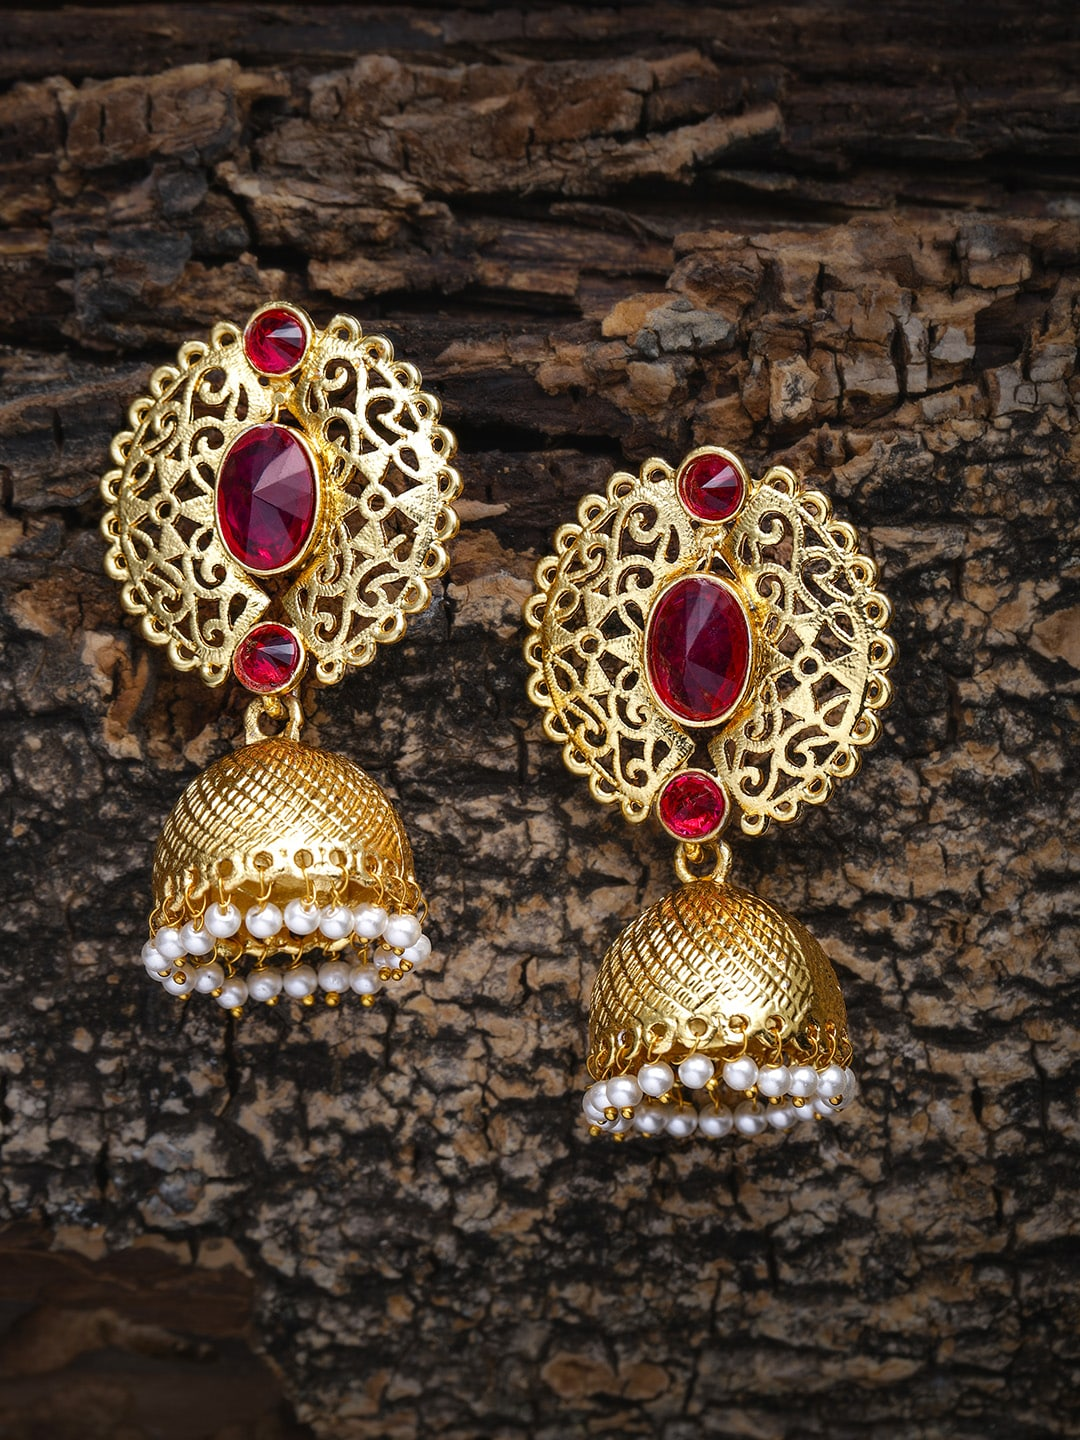 dadb781ec5b Jewellery For Women - Buy Women Jewellery Online in India